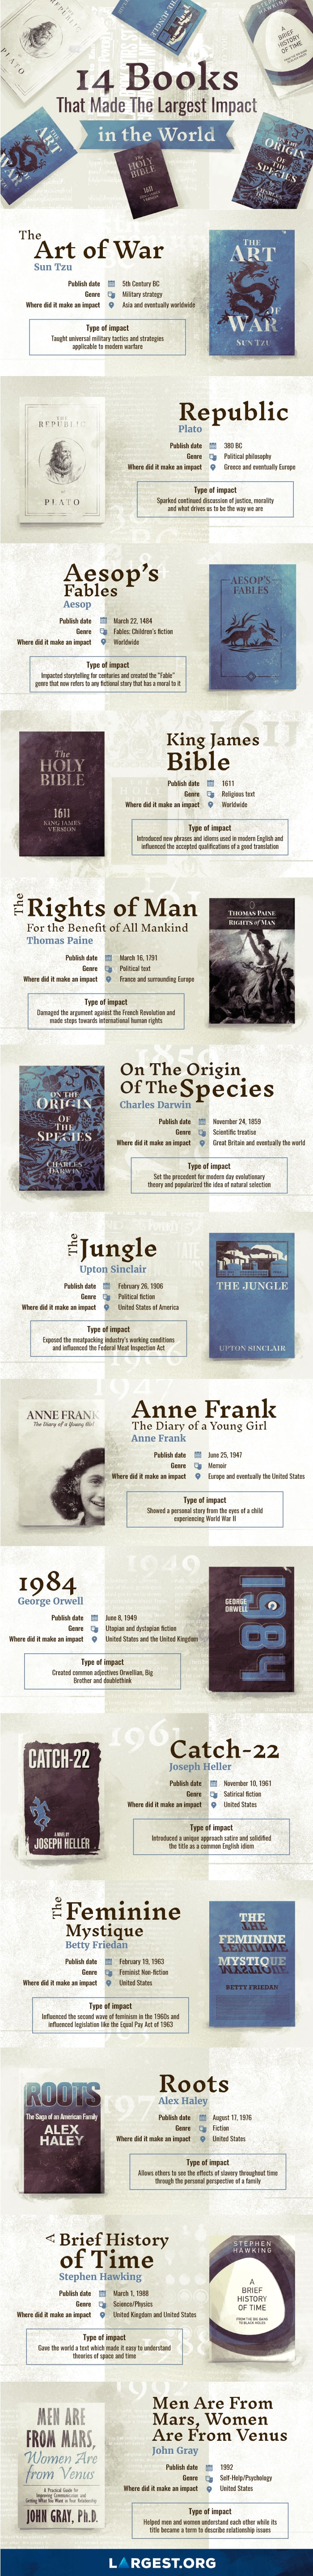 books with the largest impact infographic